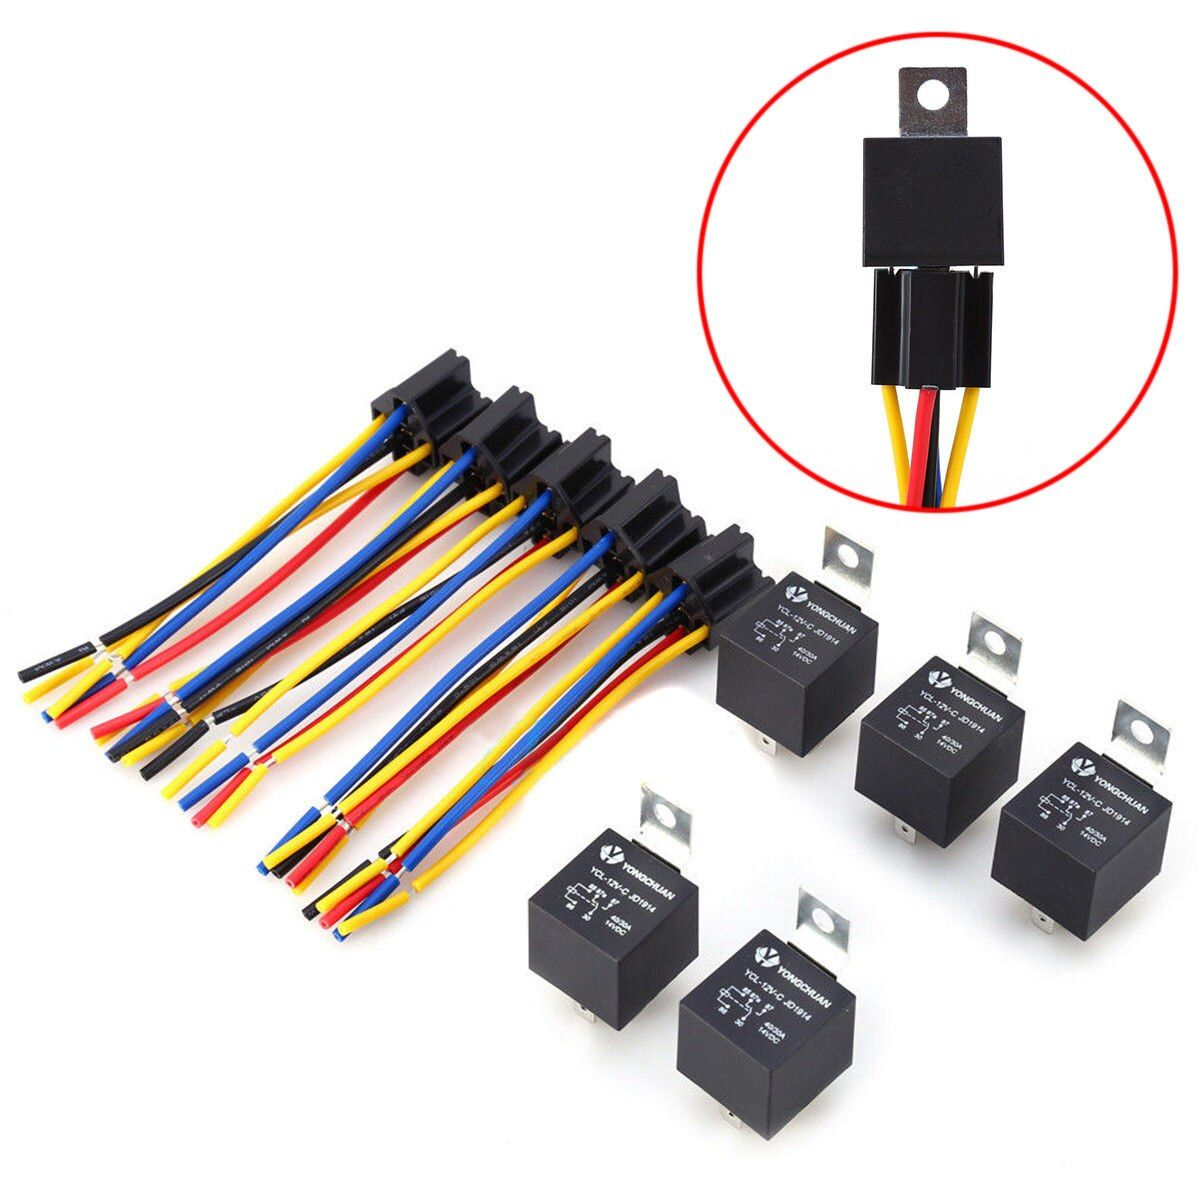 5 Pcs 5 Pin Cable Relay Socket Harness Connector DC w